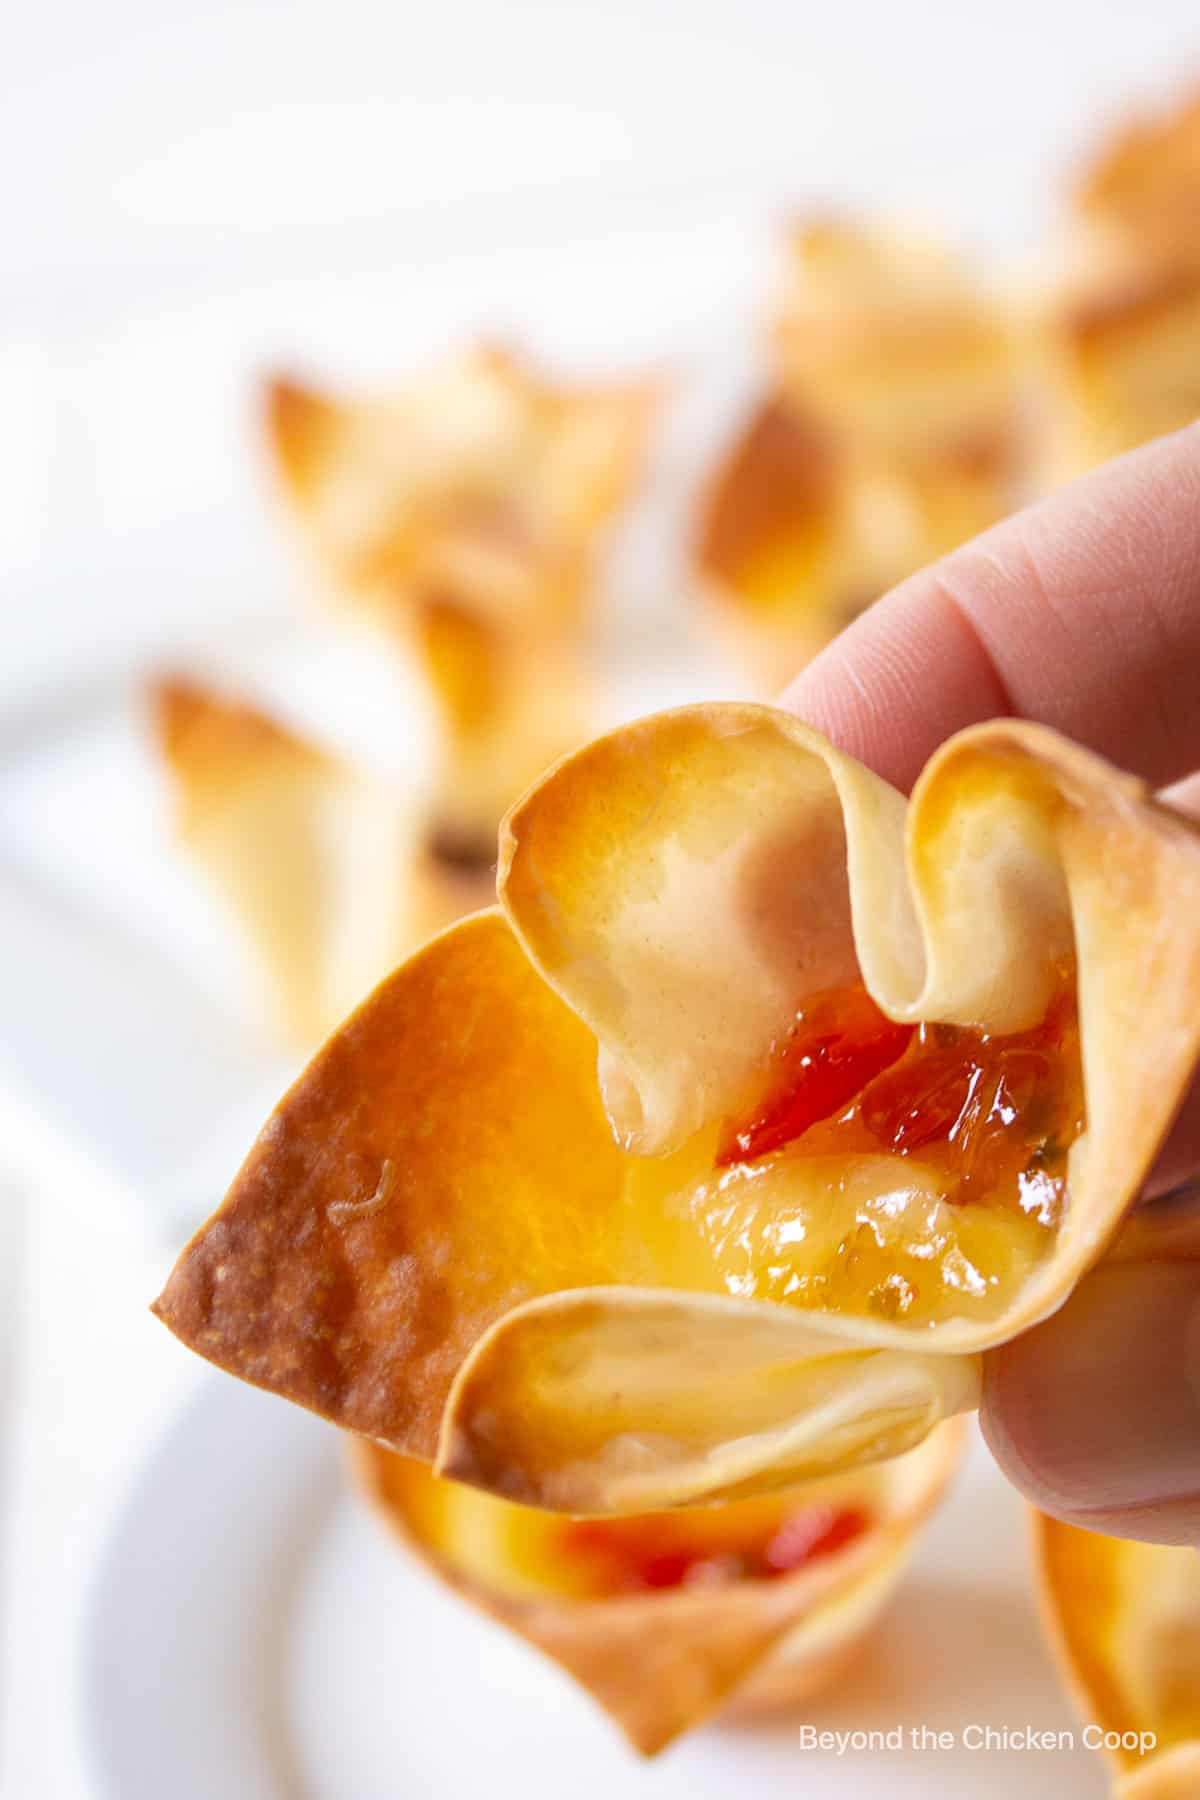 An appetizer filled with cheese and pepper jelly.